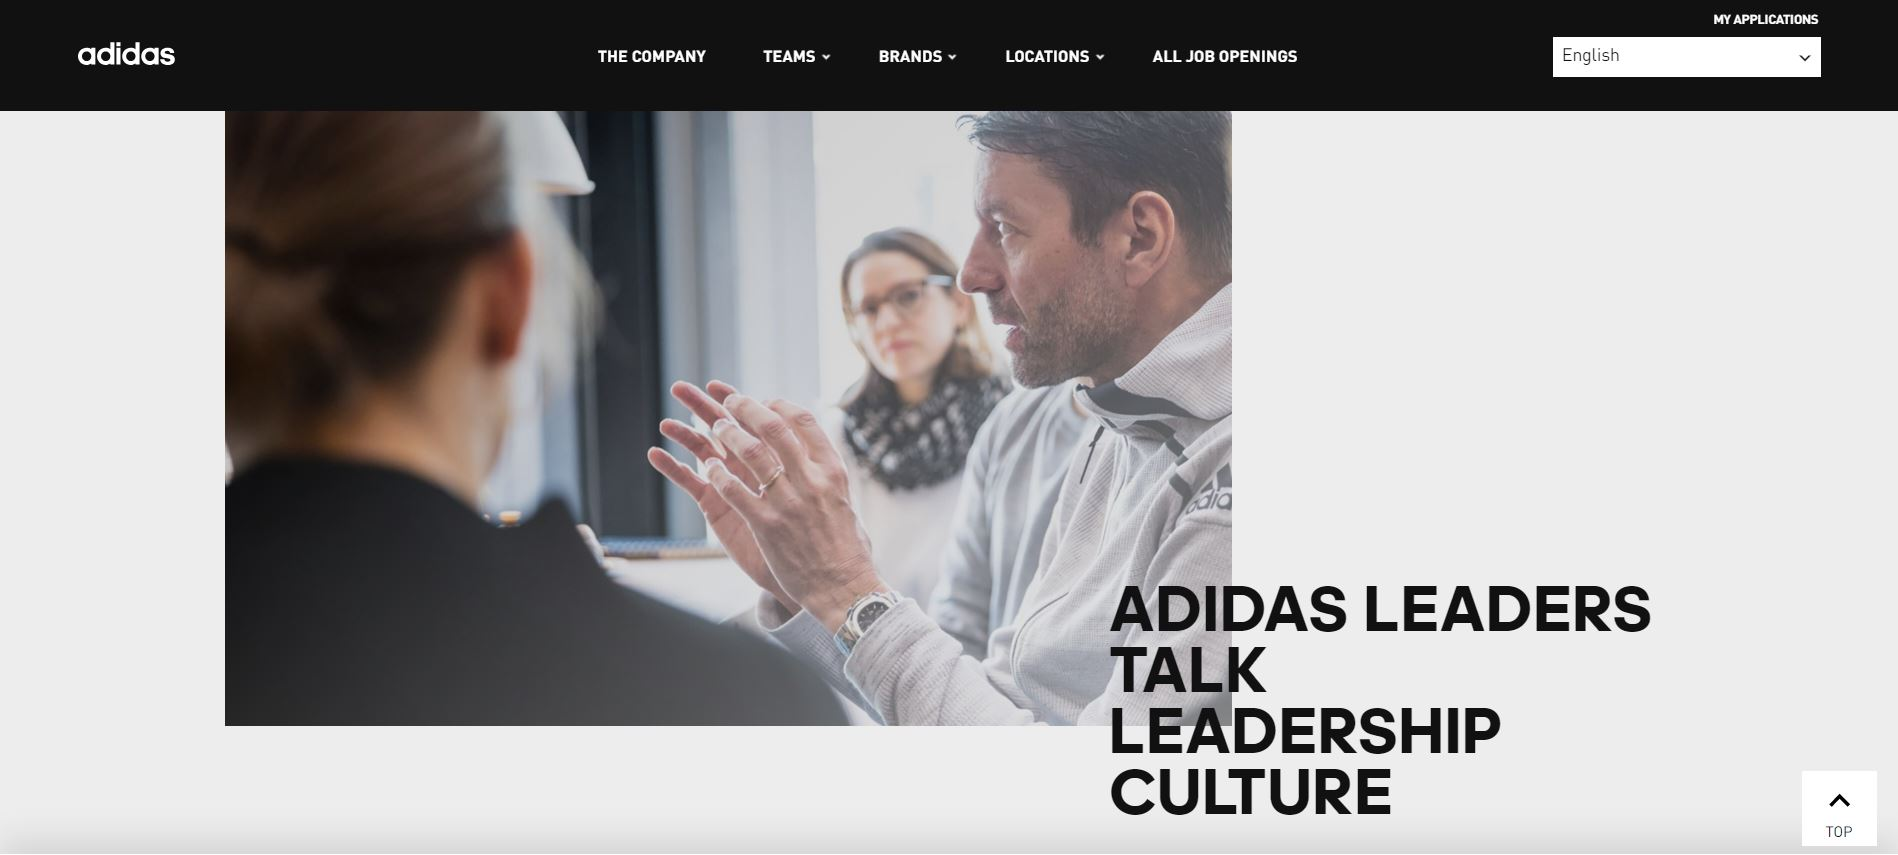 Adidas Leadership Community - Since Adidas already has a leadership development program at Adidas for their employees. A sub-platform under this community would be created for female student athletes to participate monthly at Adidas, conducted by Adidas professionals and leaders.